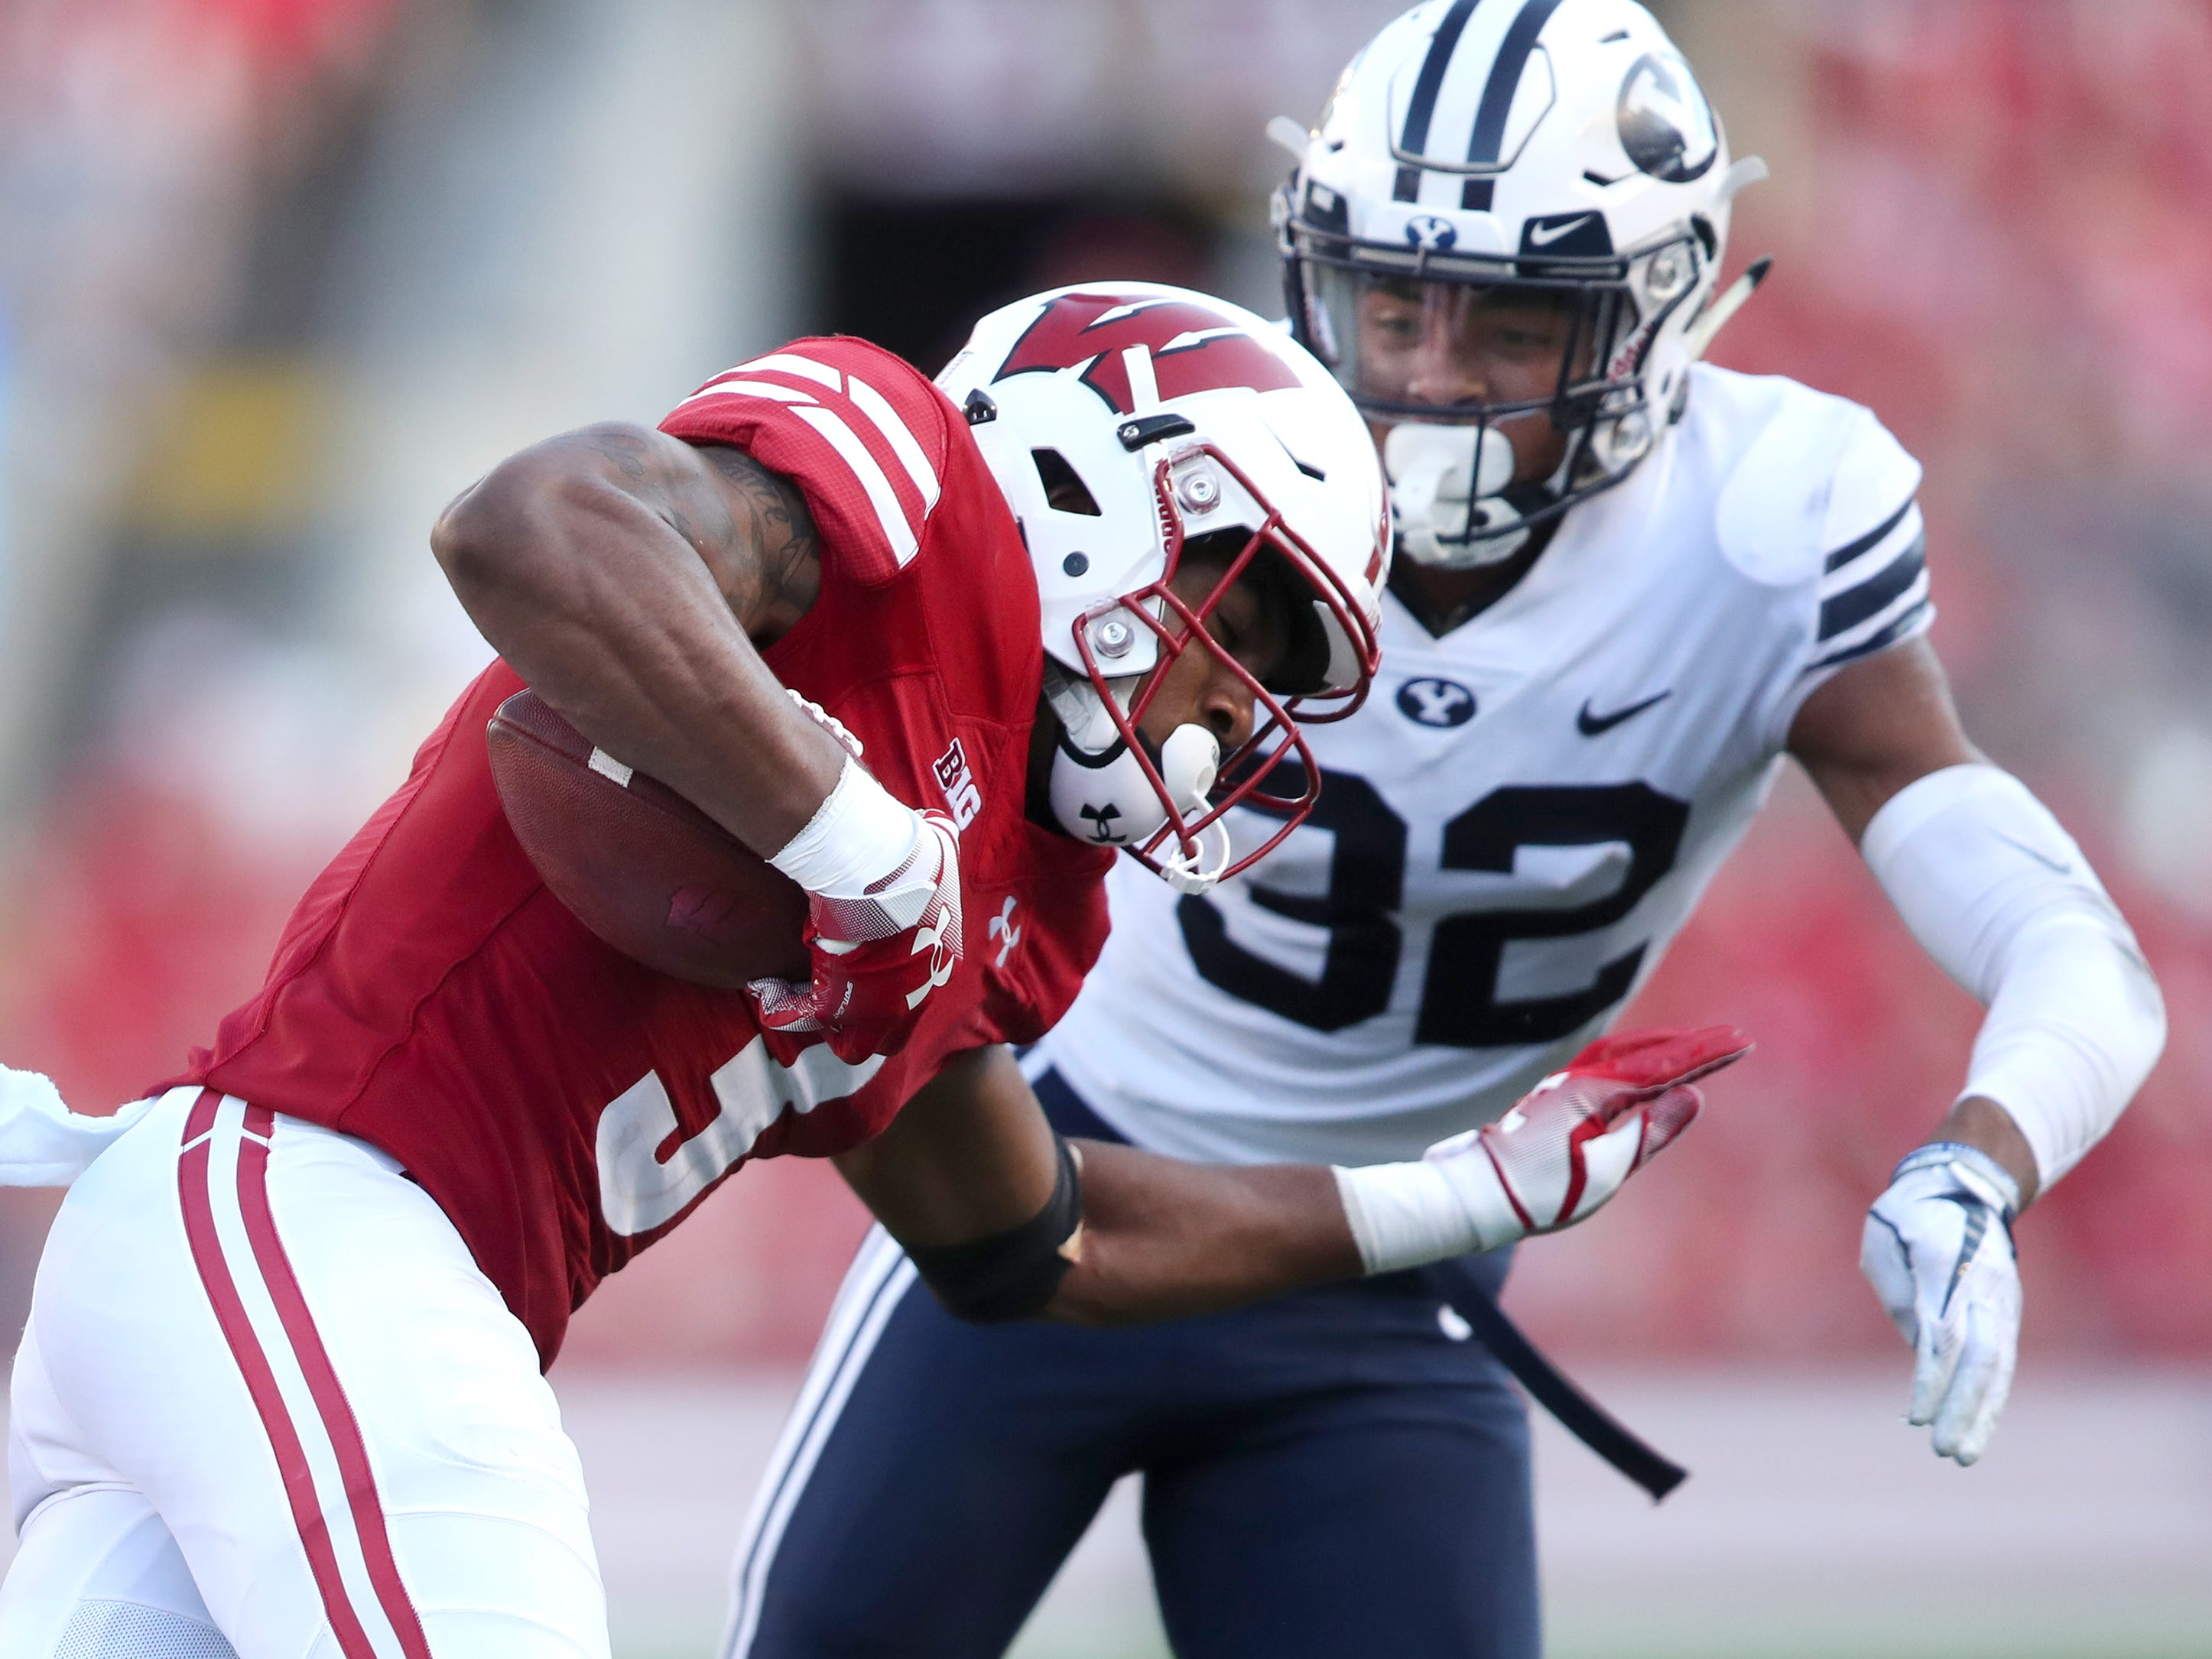 Wisconsin Badgers wide receiver Kendric Pryor (3) tries to get past Brigham Young defensive back Chris Wilcox.